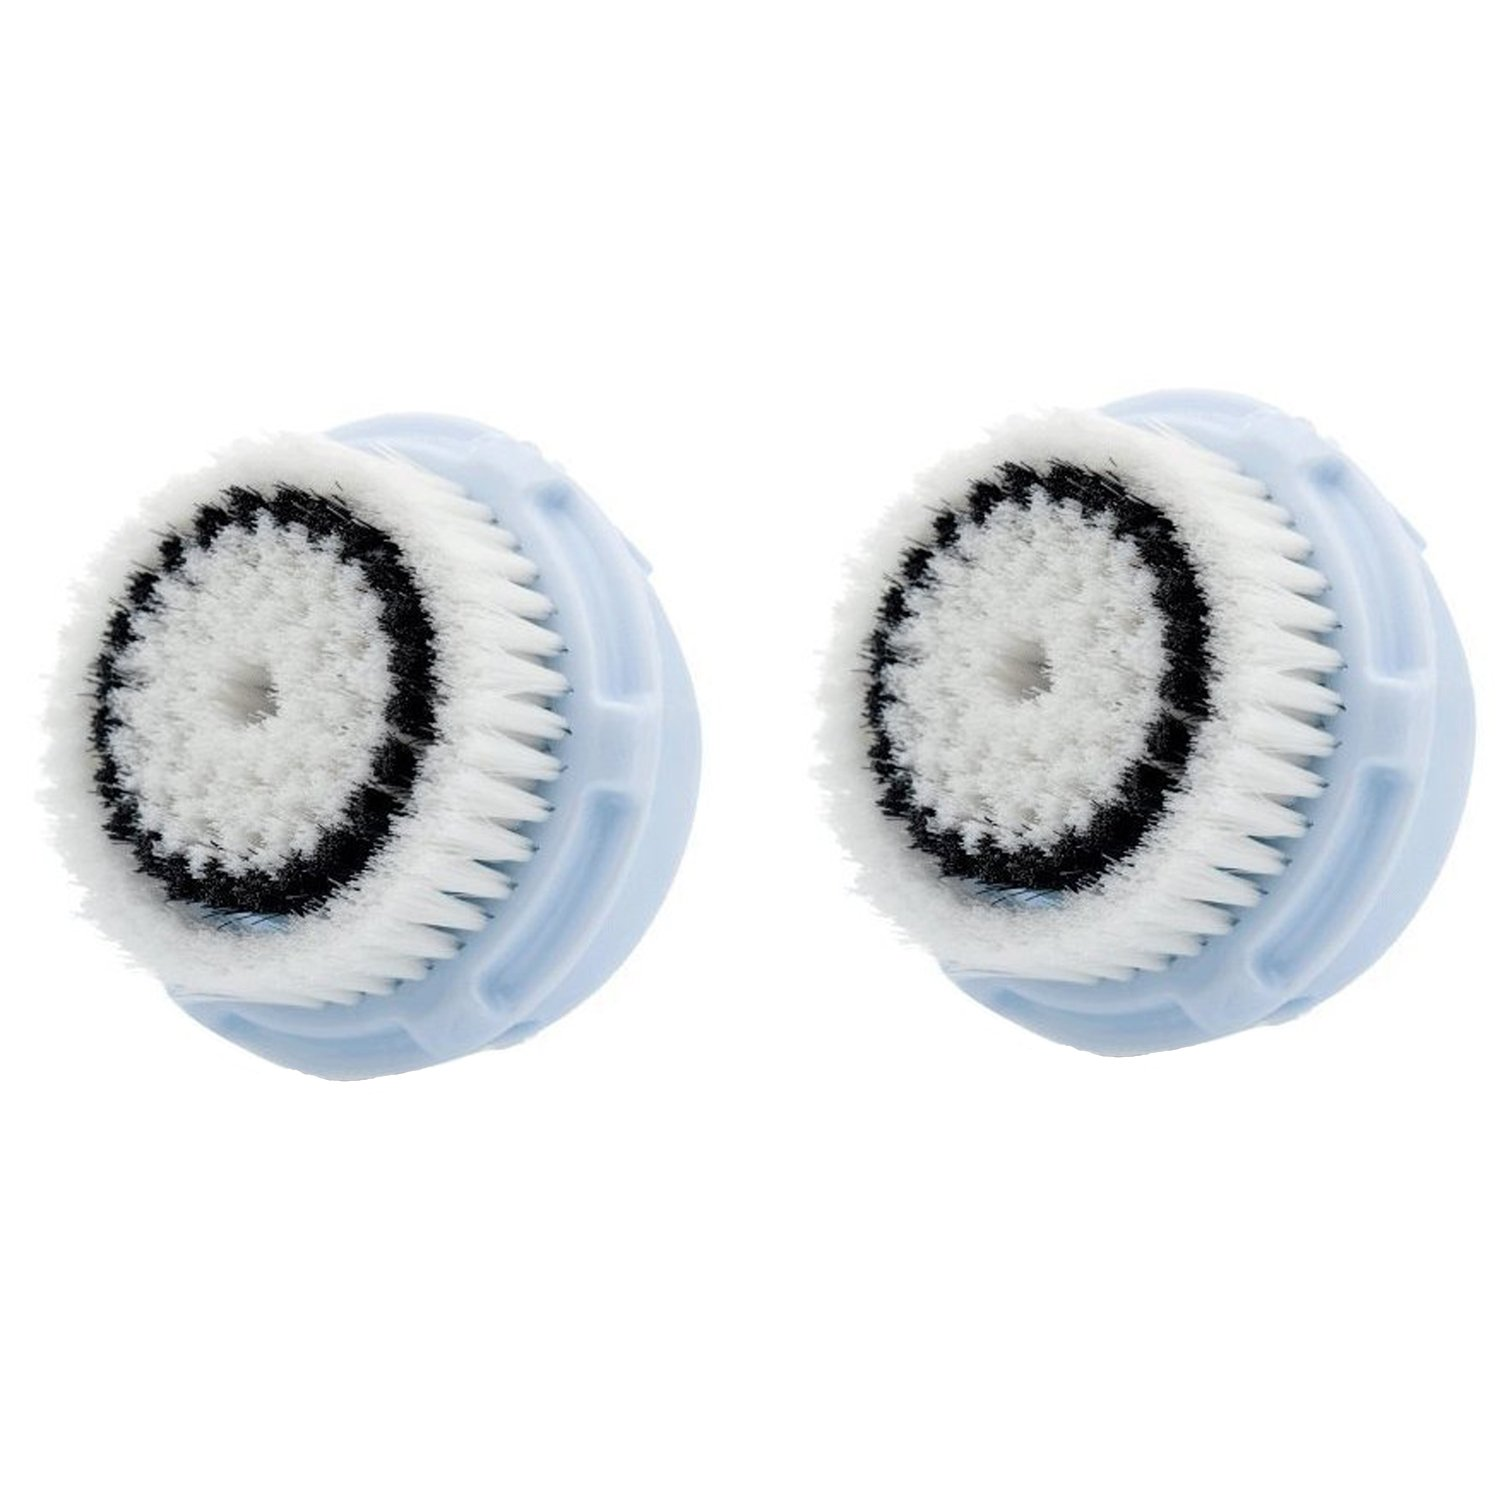 LSQtronics Delicate Facial Brush Heads for Clarisonic. Face Cleansing Brush Heads for Daily Skin Care. Compatible with Clarisonic MIA, MIA 2, ARIA, PRO and PLUS Cleansing Systems. (2-Pack Delicate Brush Head)